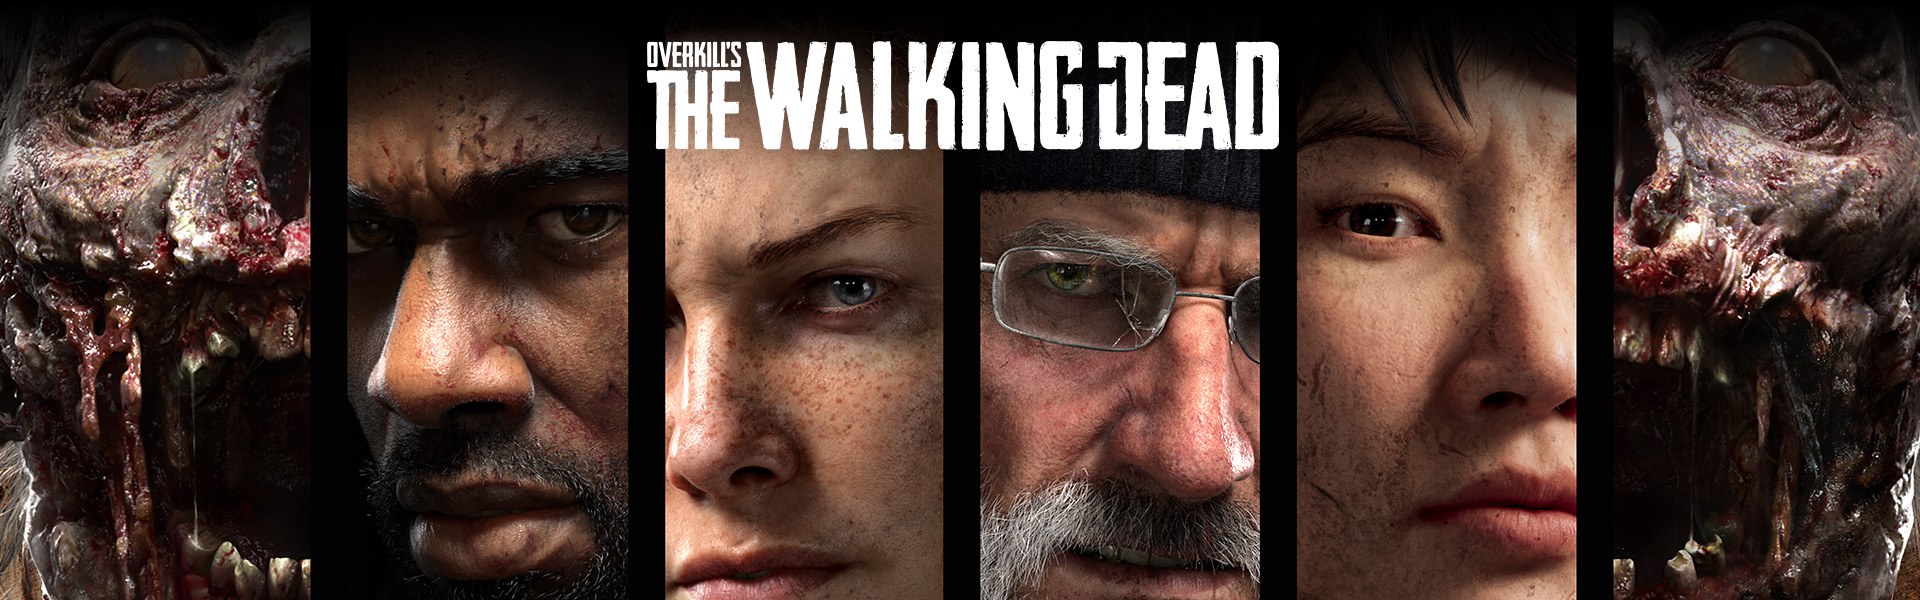 Overkill's The Walking Dead, primo piano dei volti di quattro umani e due zombie